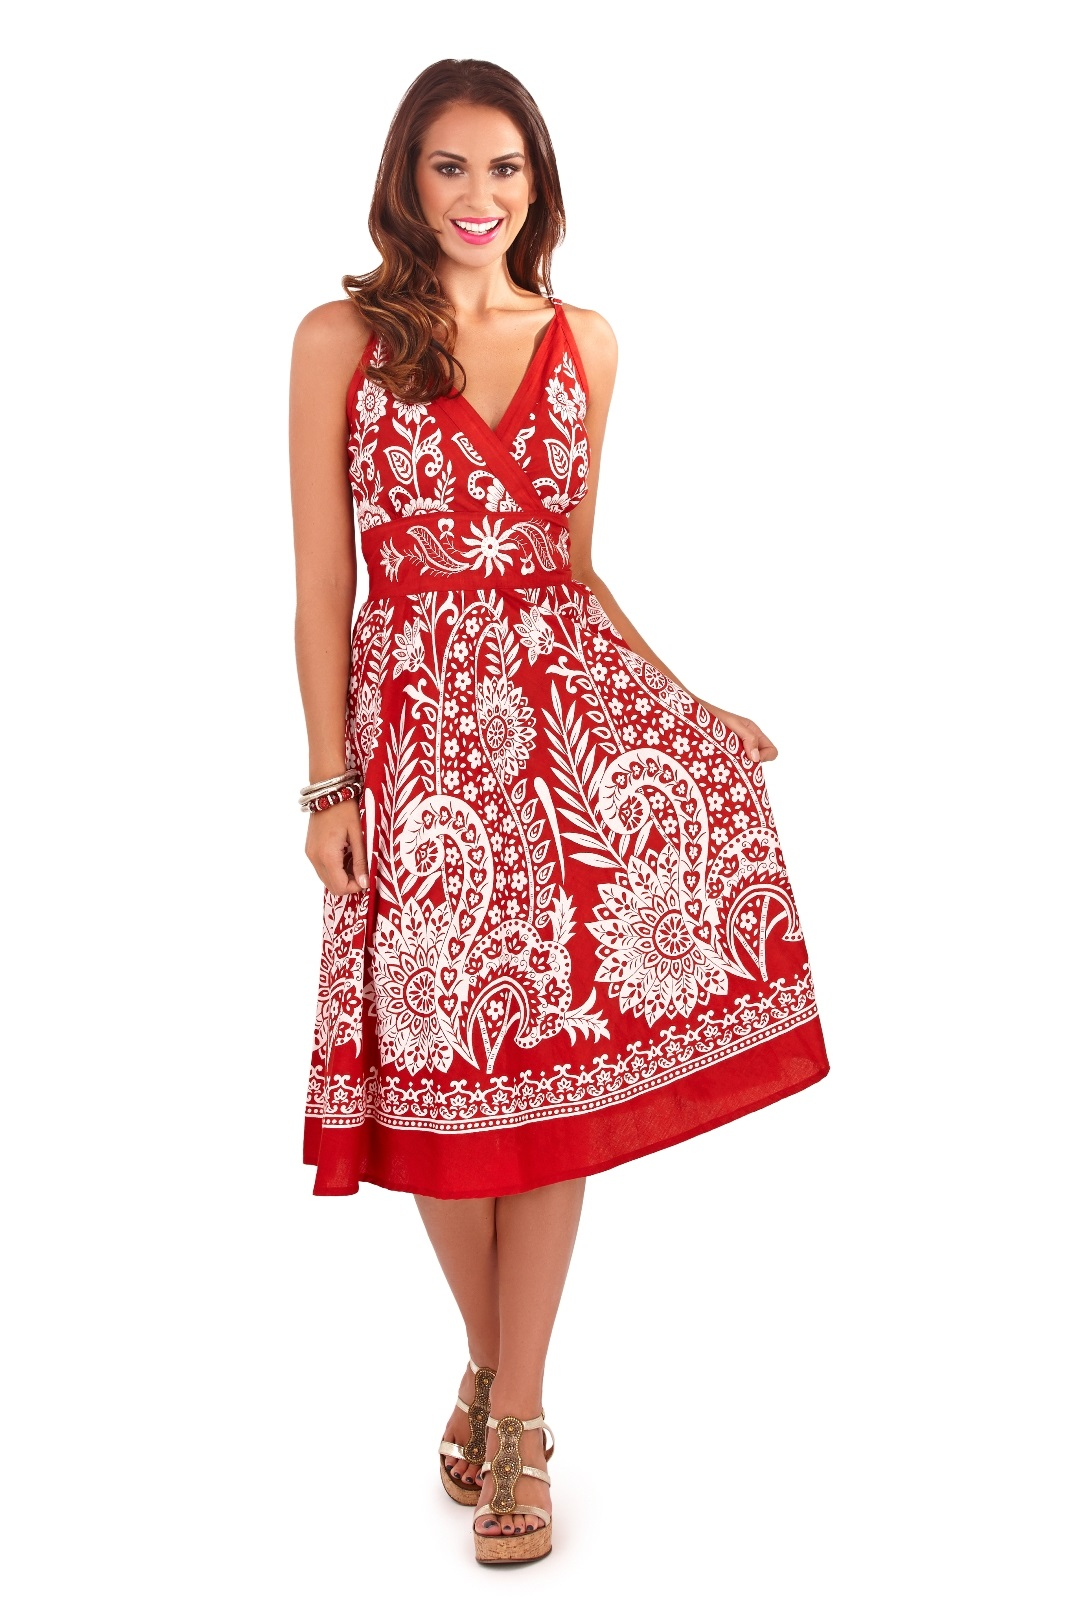 Summer dresses for women over 40 are a great wardrobe staple because they're easy, comfortable and practical for our casual midlife lifestyle. Here are the latest styles. See which one is right for you. So here's a little guide that highlights the latest trends and what might work best.